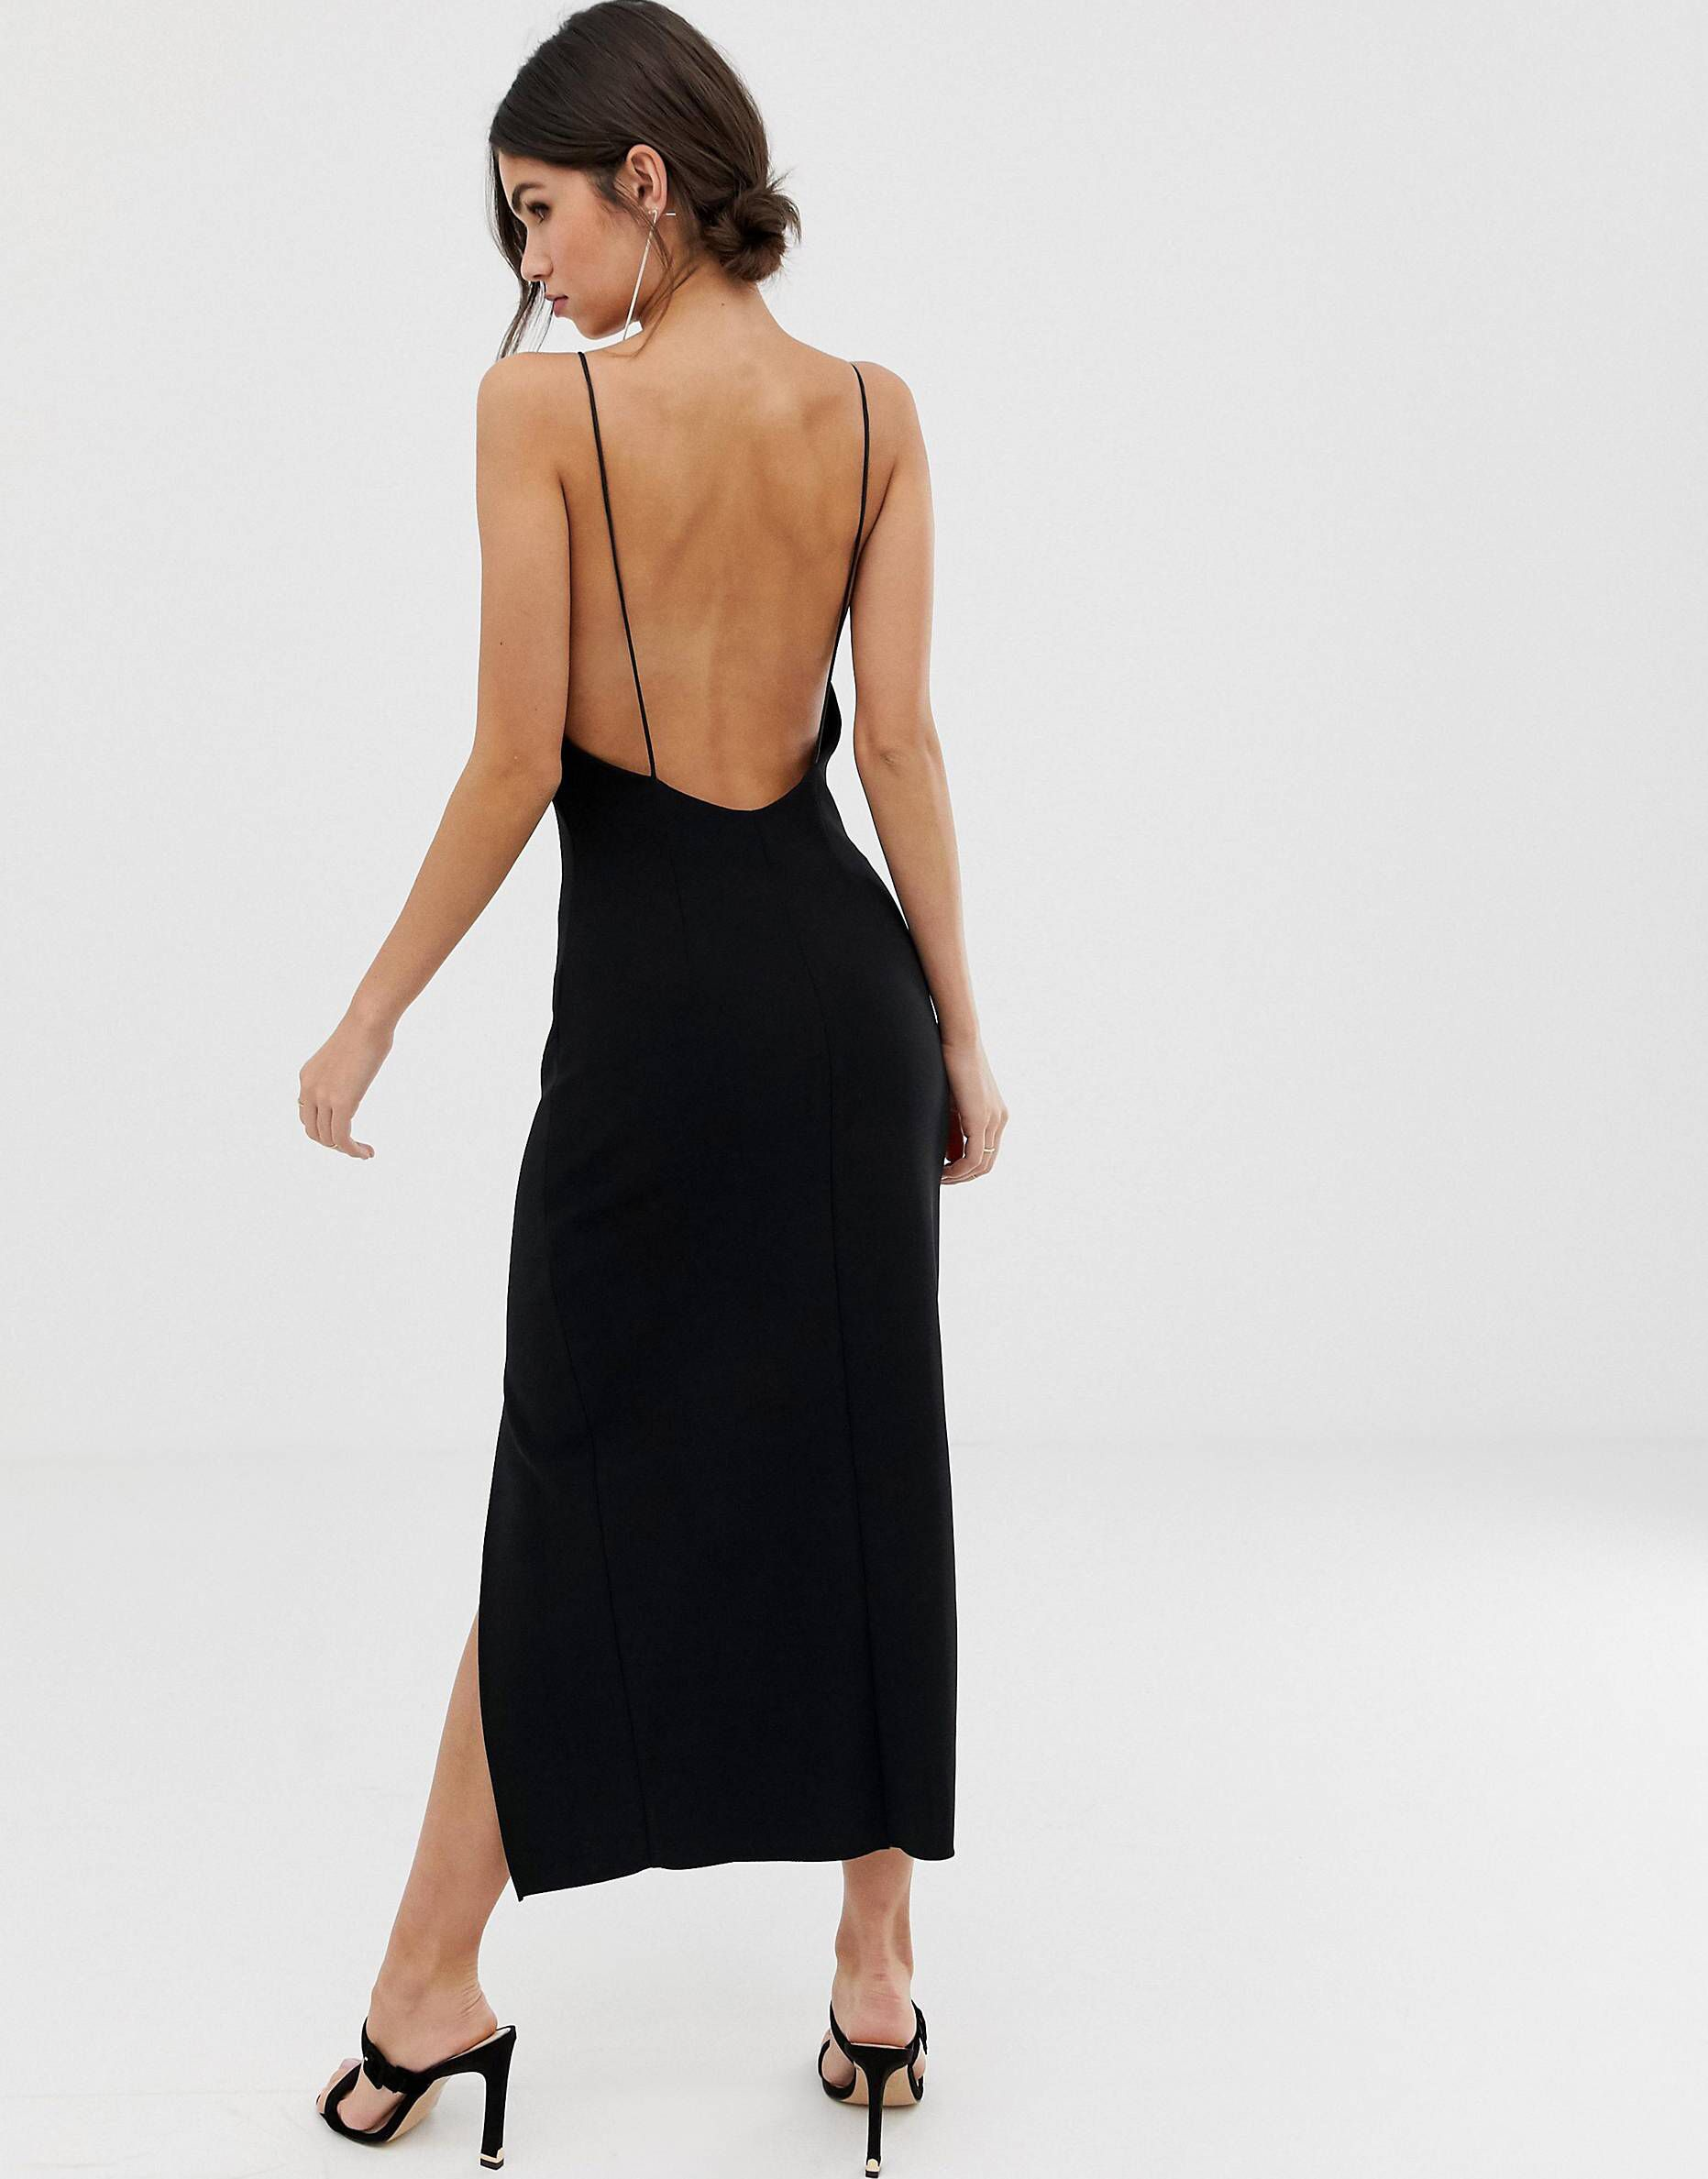 Pin By Bedazzle On Latest Shopping Item Black Dresses Classy Low Back Dresses Elegant Dresses For Women [ 2377 x 1863 Pixel ]